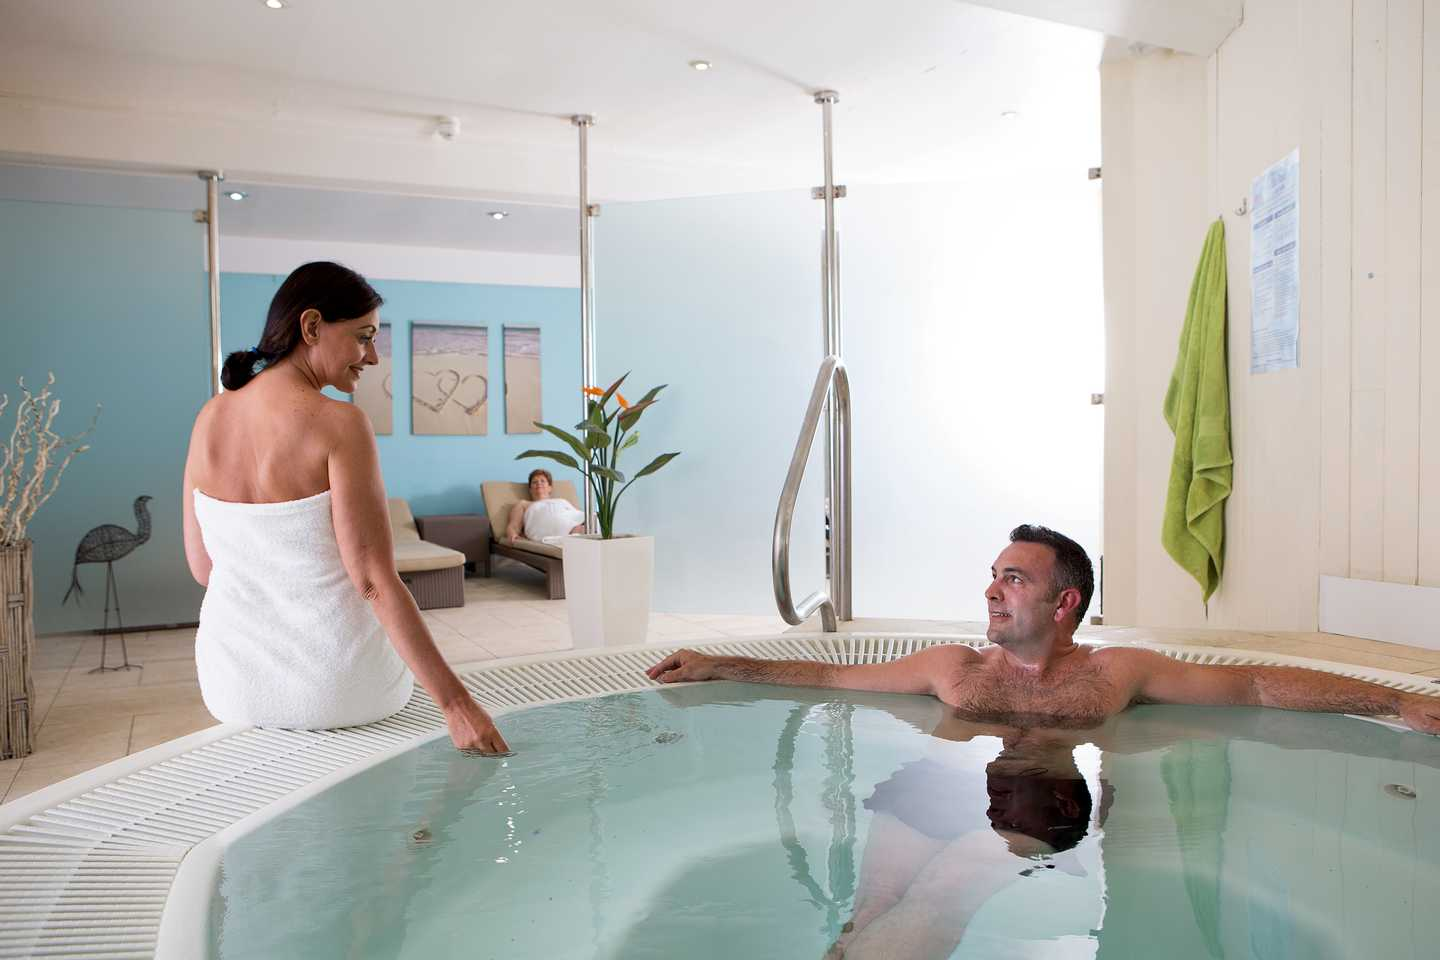 A couple relaxing in the Owners' hot tub